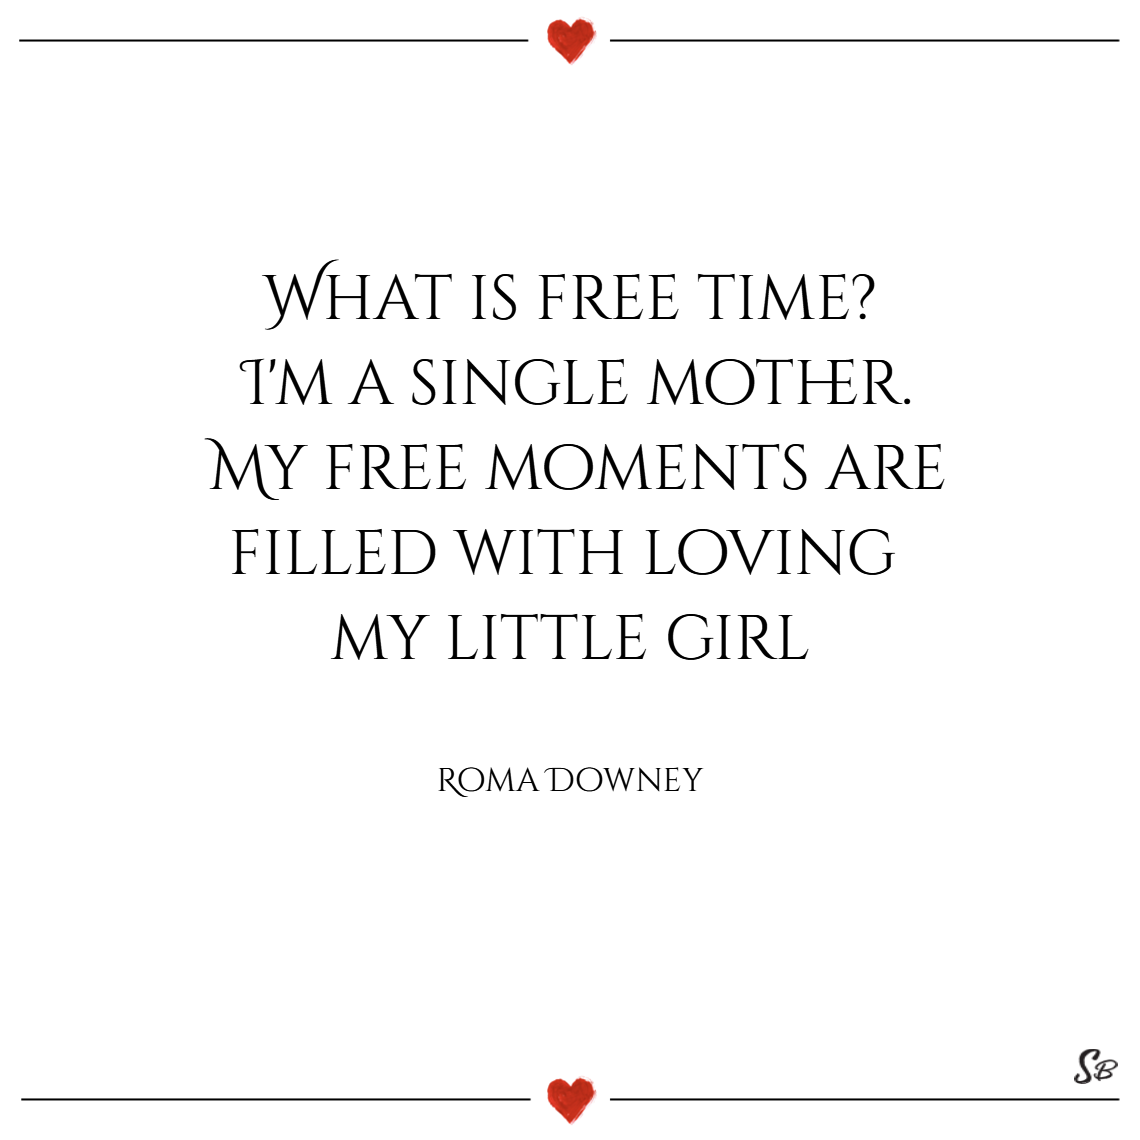 Single Mom Quotes To Son: 31 Single Mom Quotes On Struggle, Endurance And Love